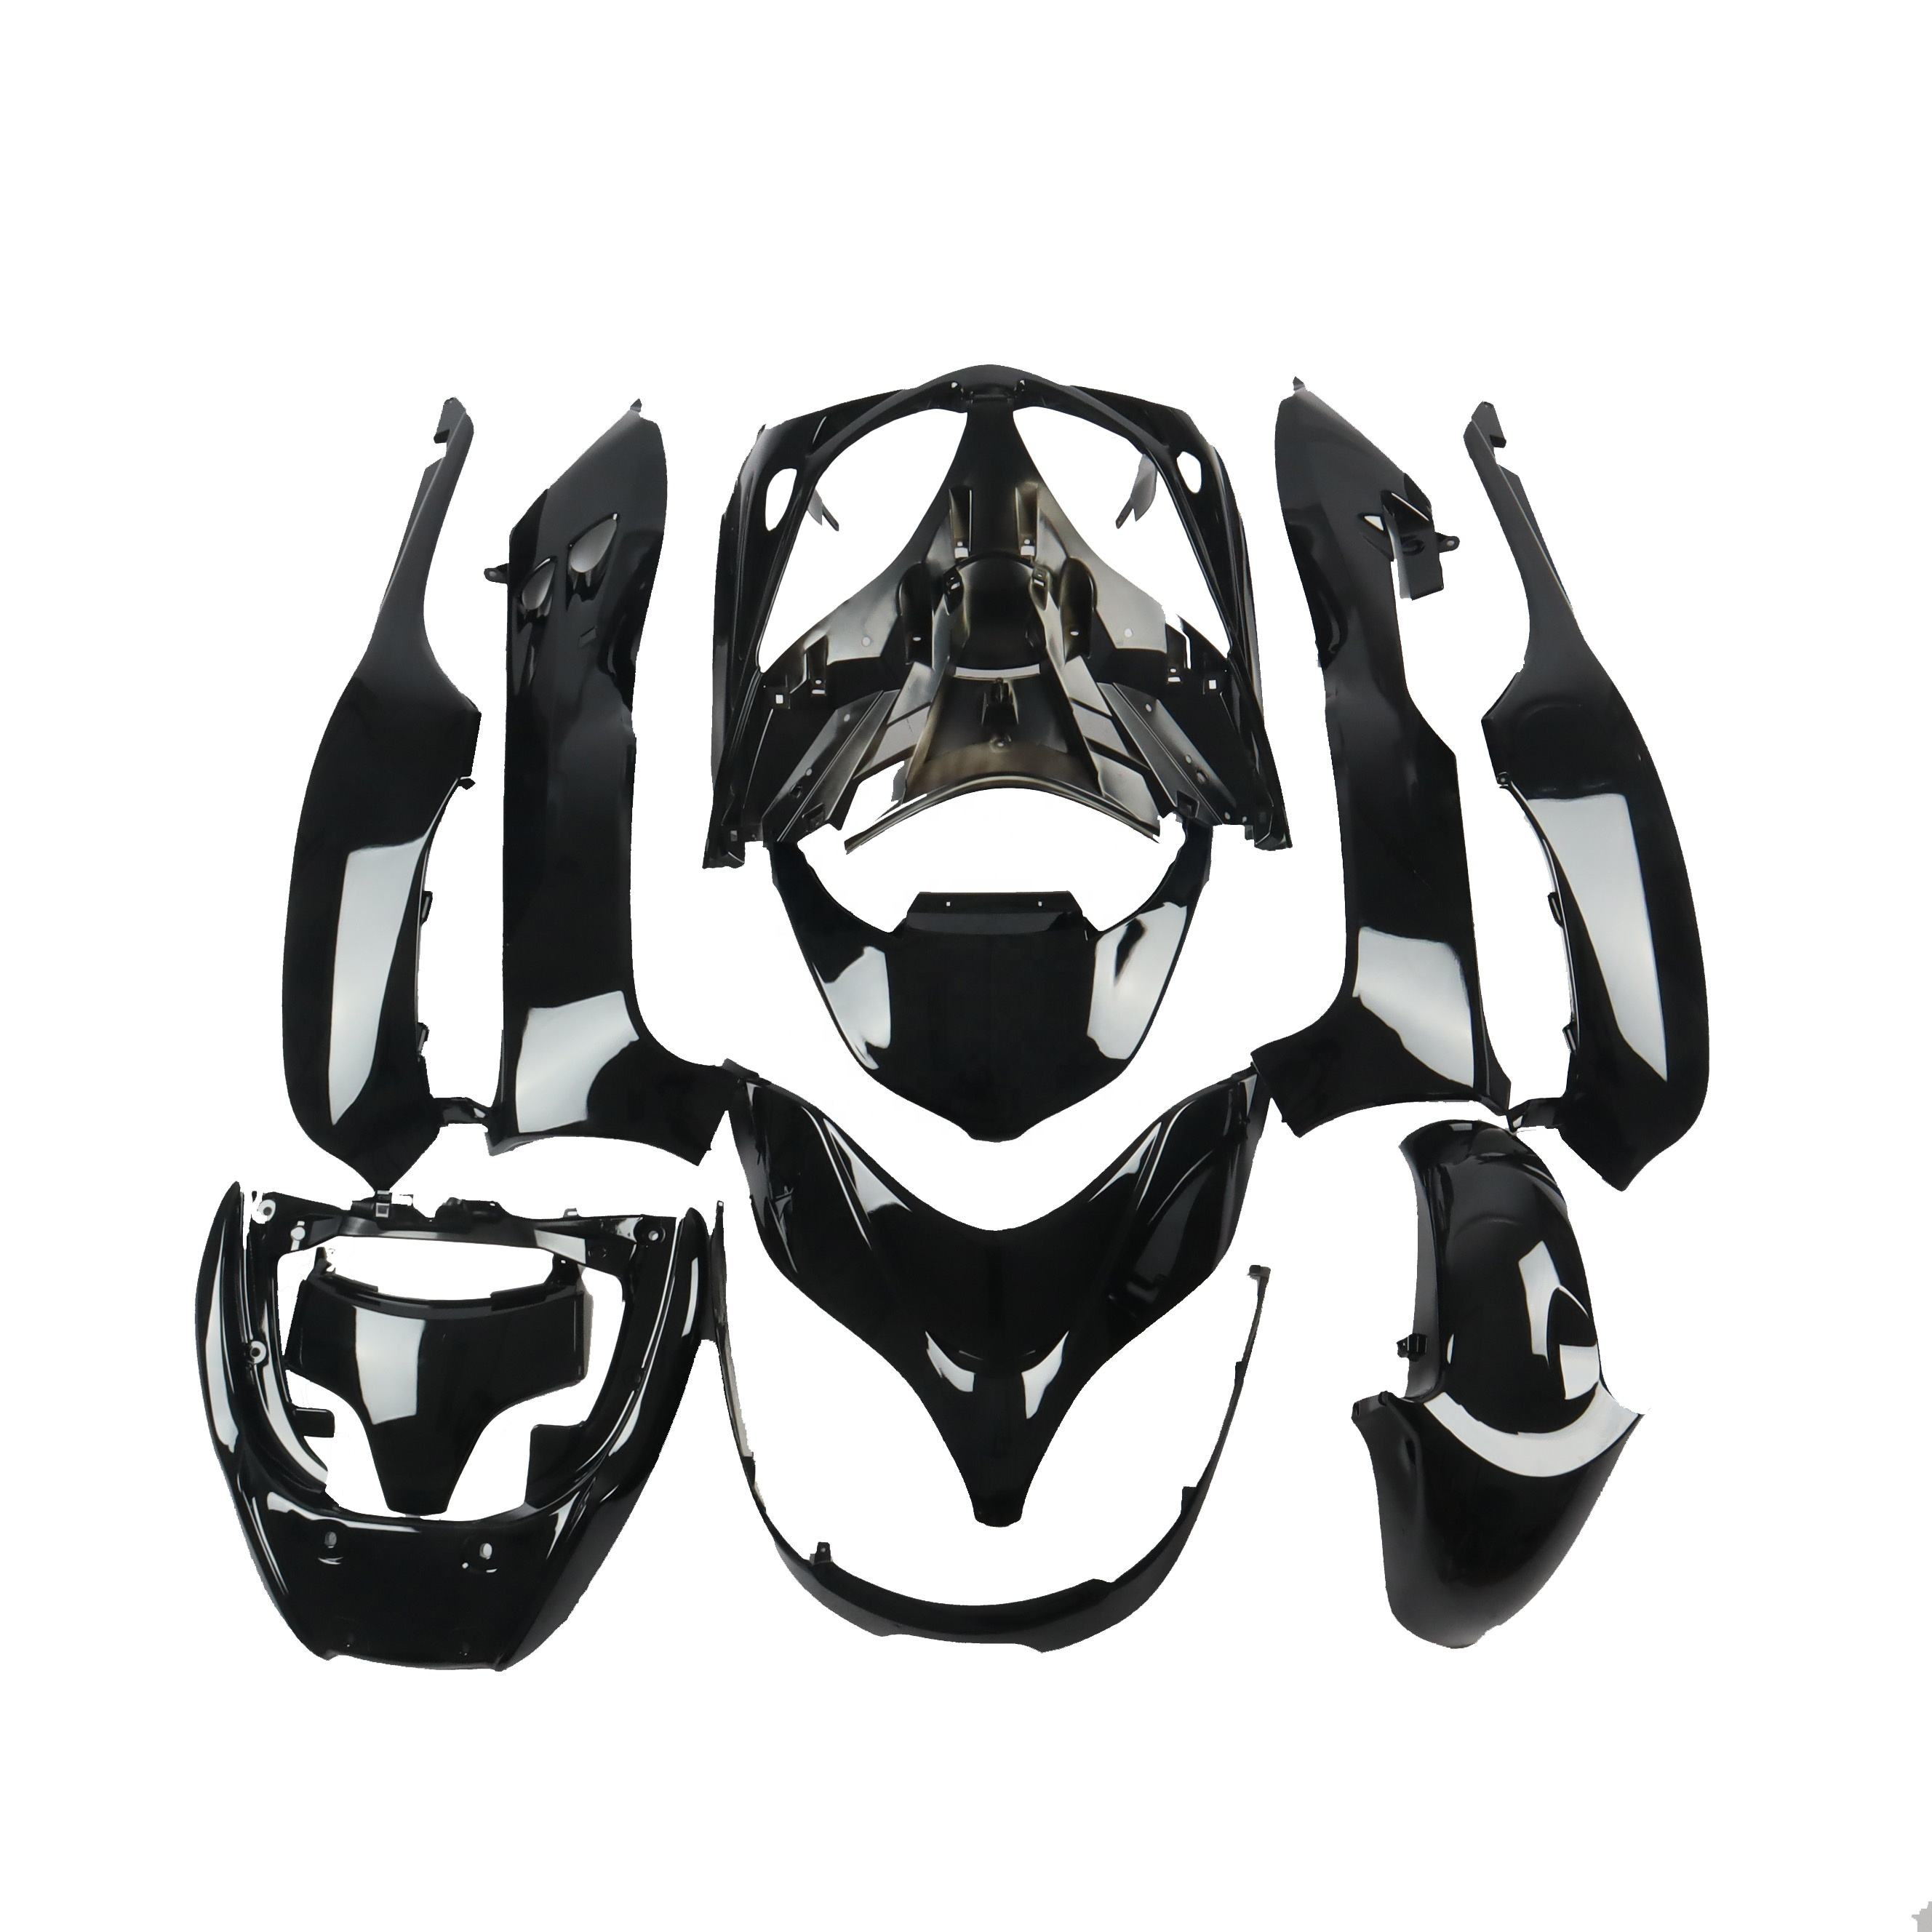 CFP250-8 -024+013 11 Piece Set Fit HONDA For FORZA MF08 Scooter Black Outer Cowl